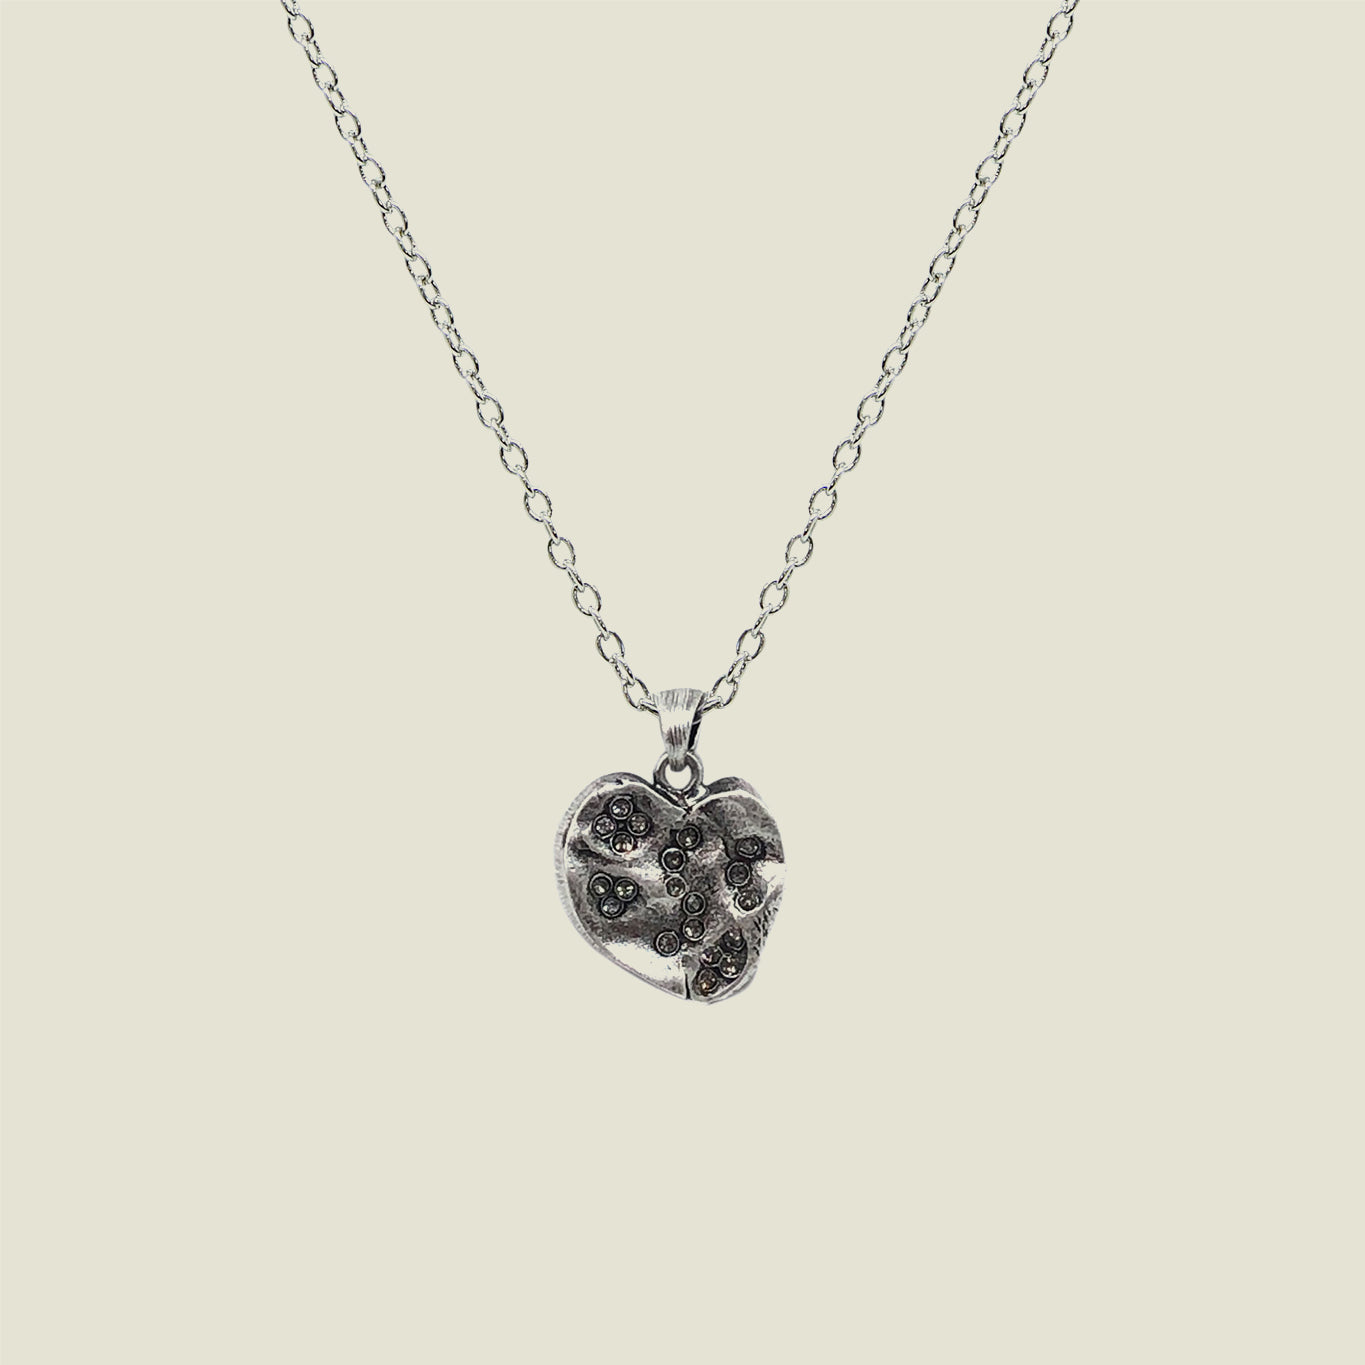 Silver Impression Heart Necklace - Medium - Blackbird General Store